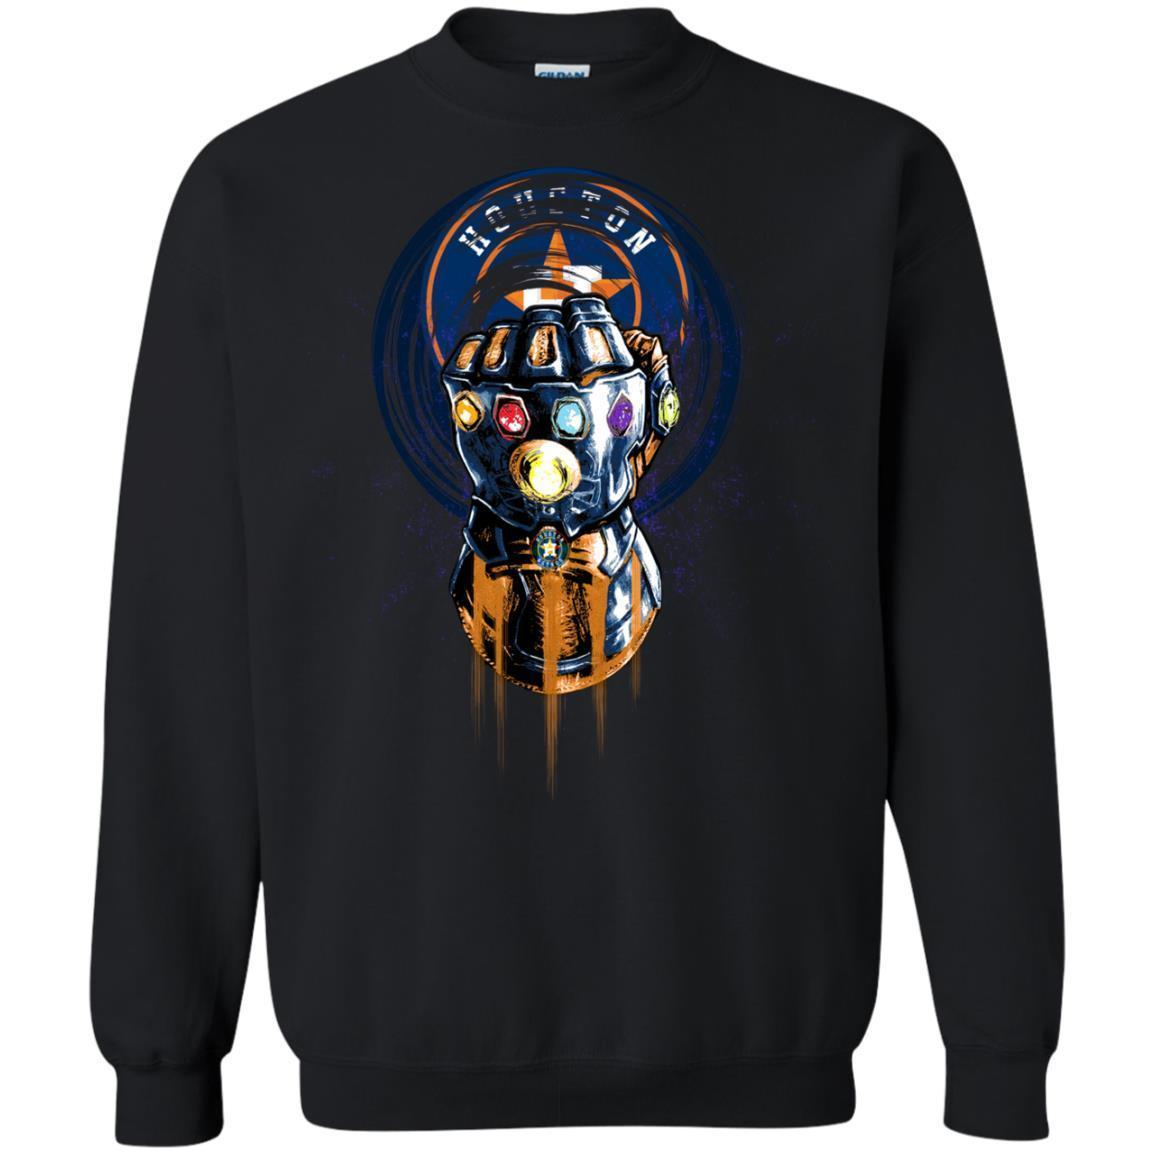 Cover Your Body With Amazing The Infinity Gauntlet Thanos Houston Astros Shirts